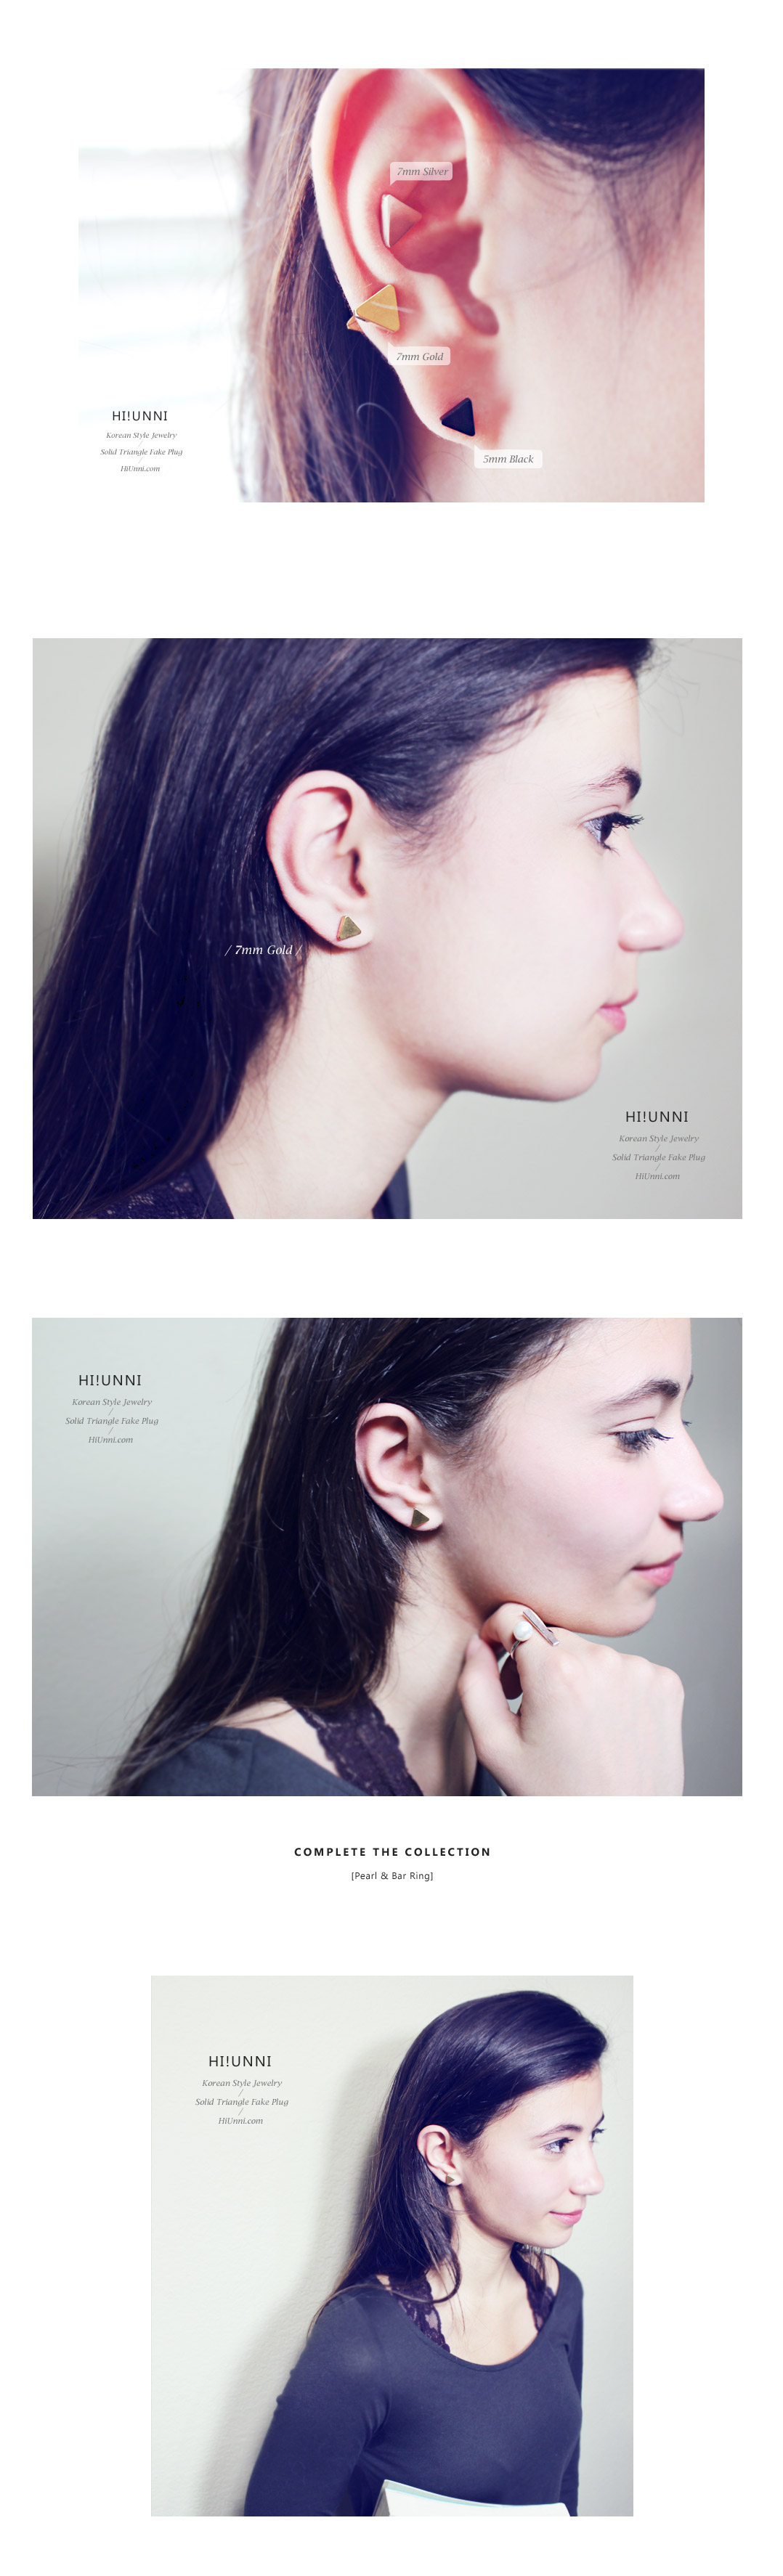 accessories_Koreanstyle_asianstyle_316l_ear_cartilage_piercing_earrings_16g_earstuds_barbell_fake_plug_cheaters_triangle_5